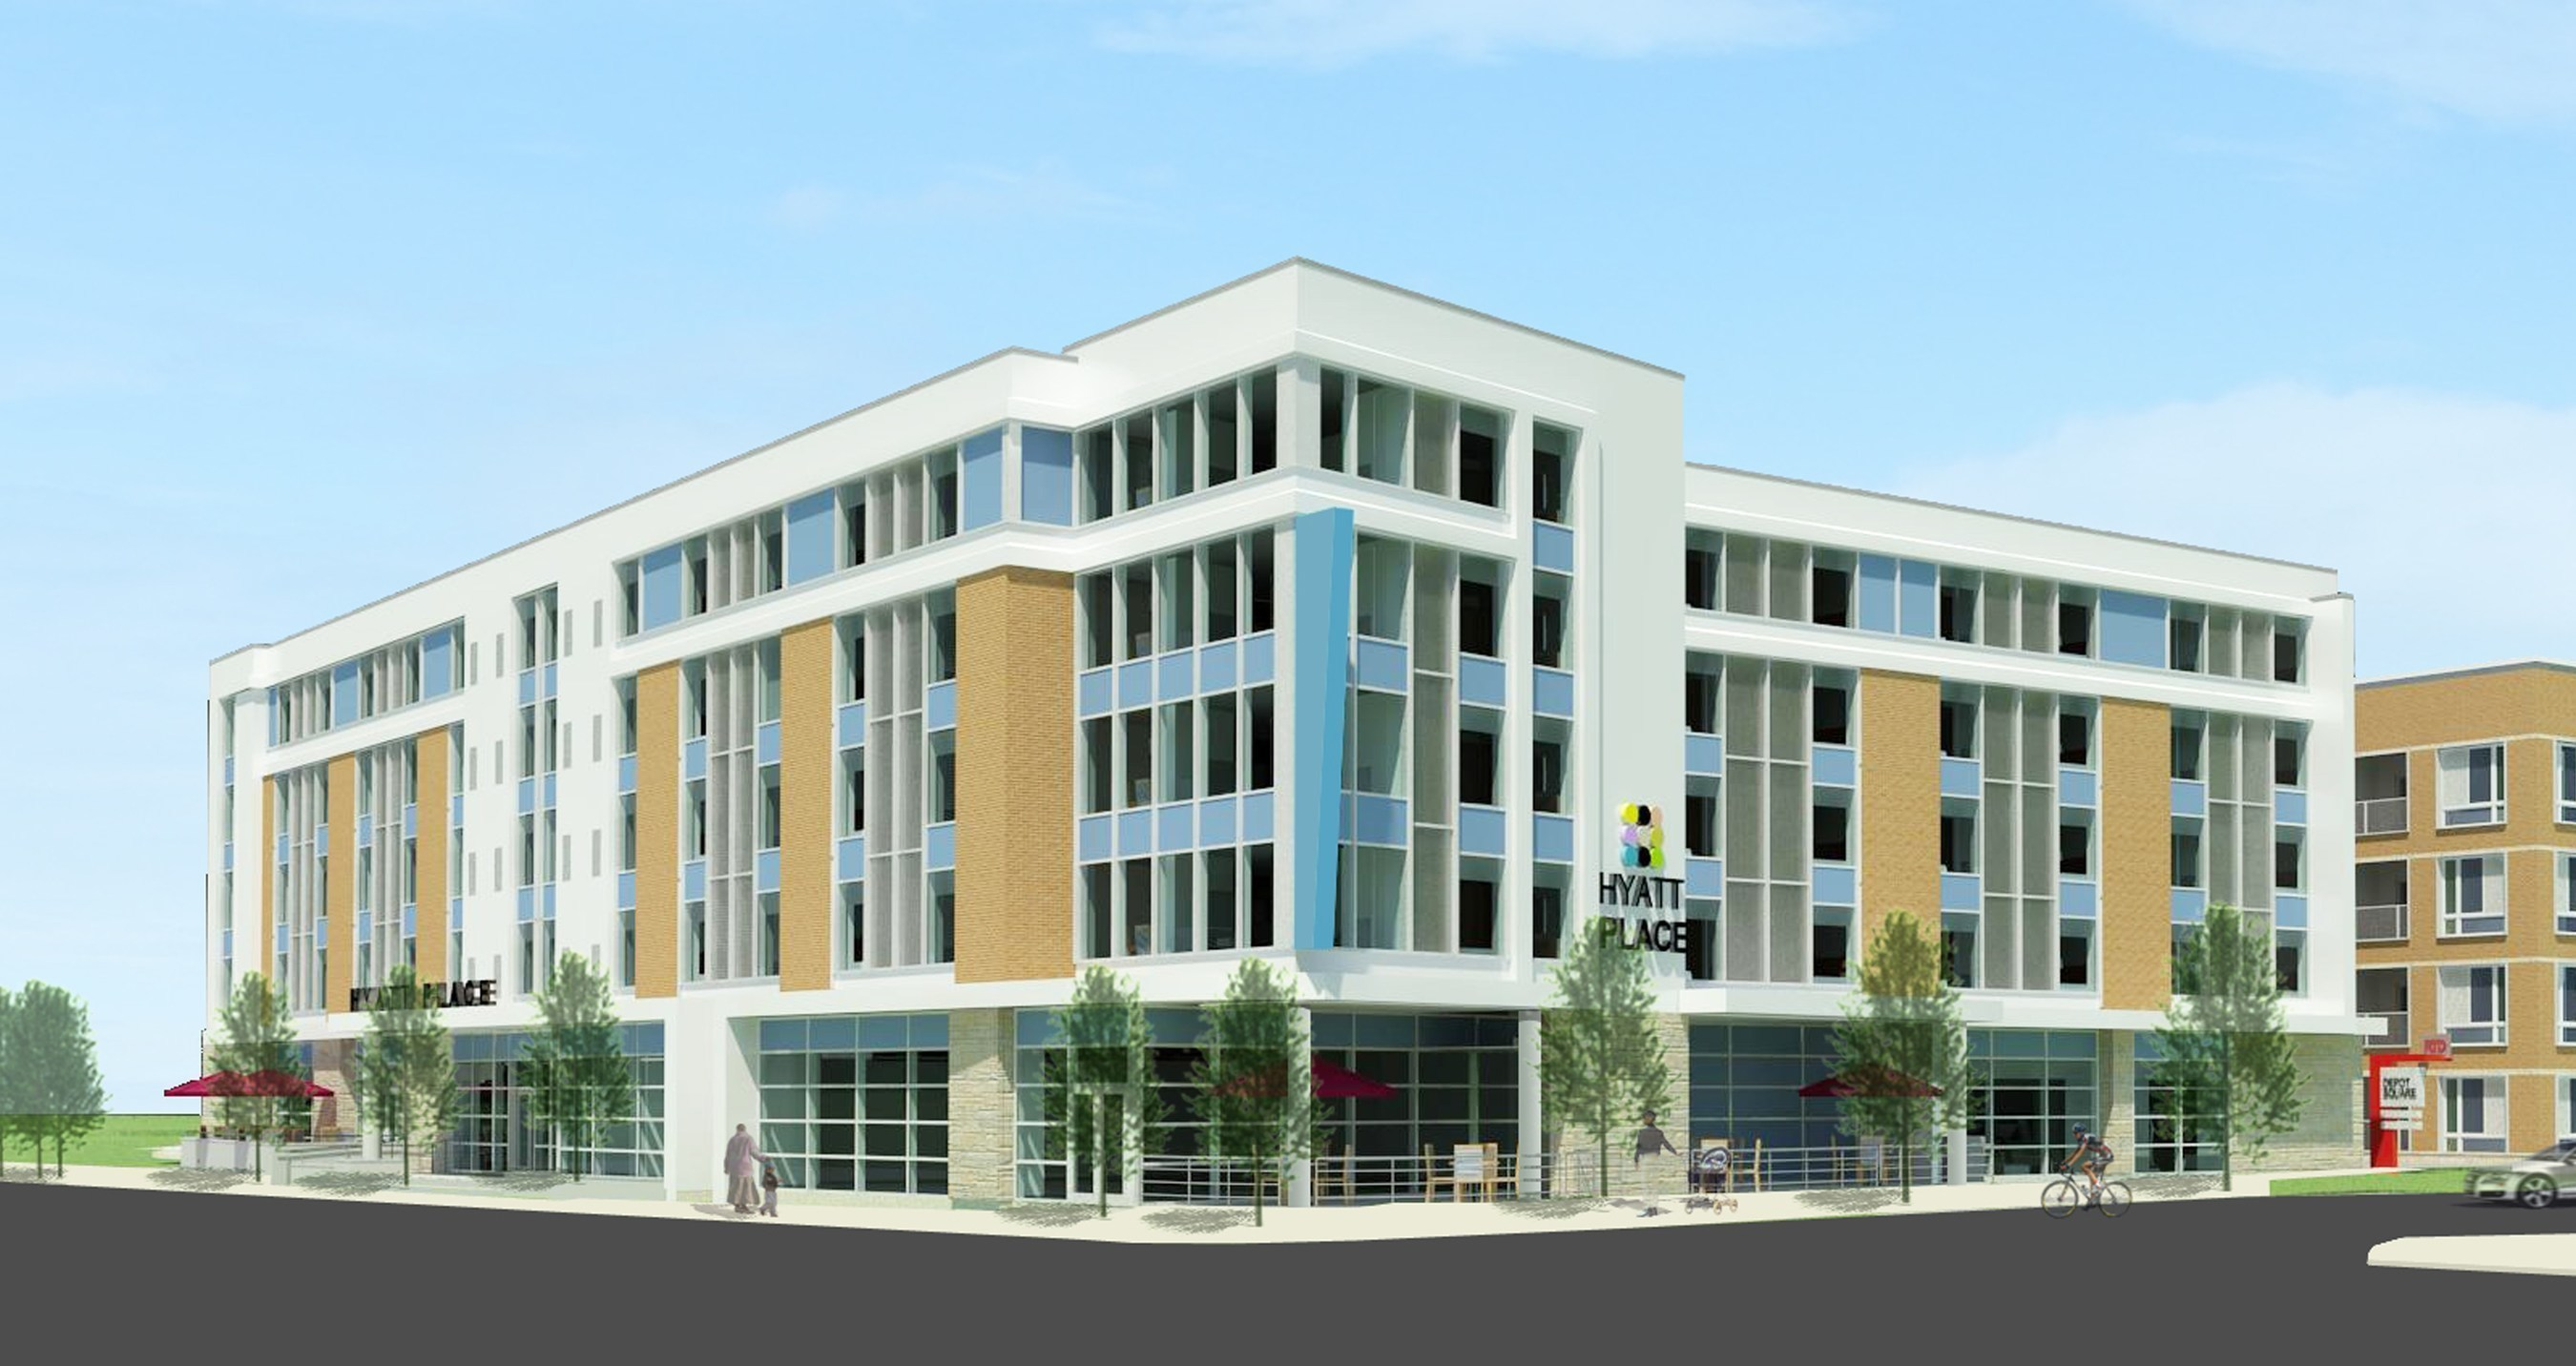 Hyatt Place Boulder | Pearl Street announces opening. The hotel is located in the city center of Boulder, Colorado in the Depot Square at Boulder Junction.